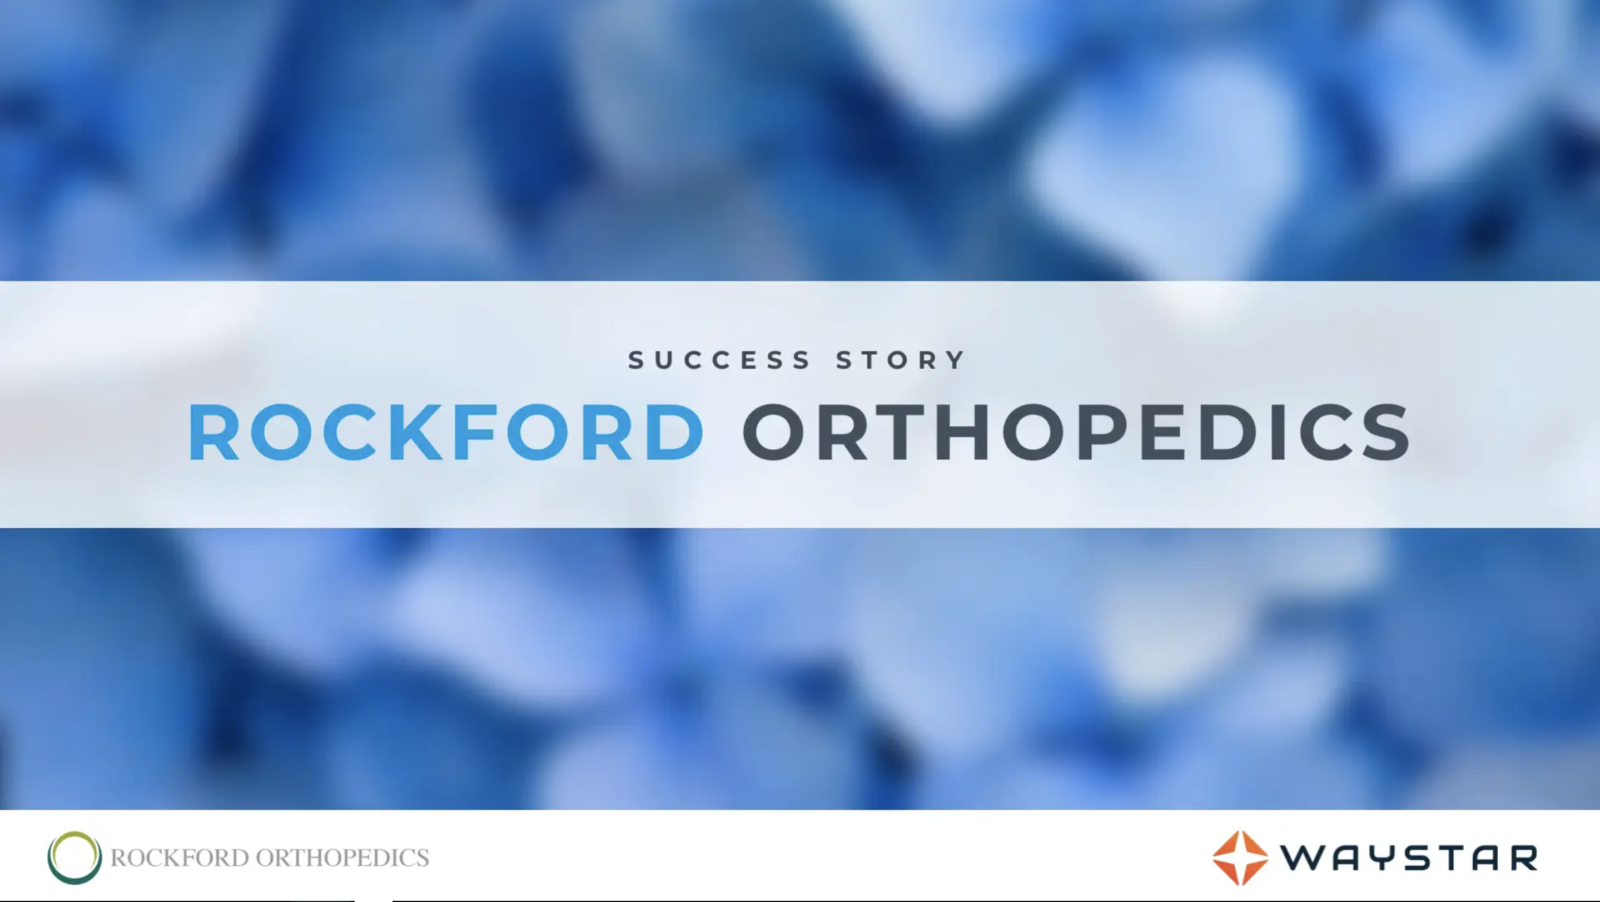 Success story: Rockford Orthopedics